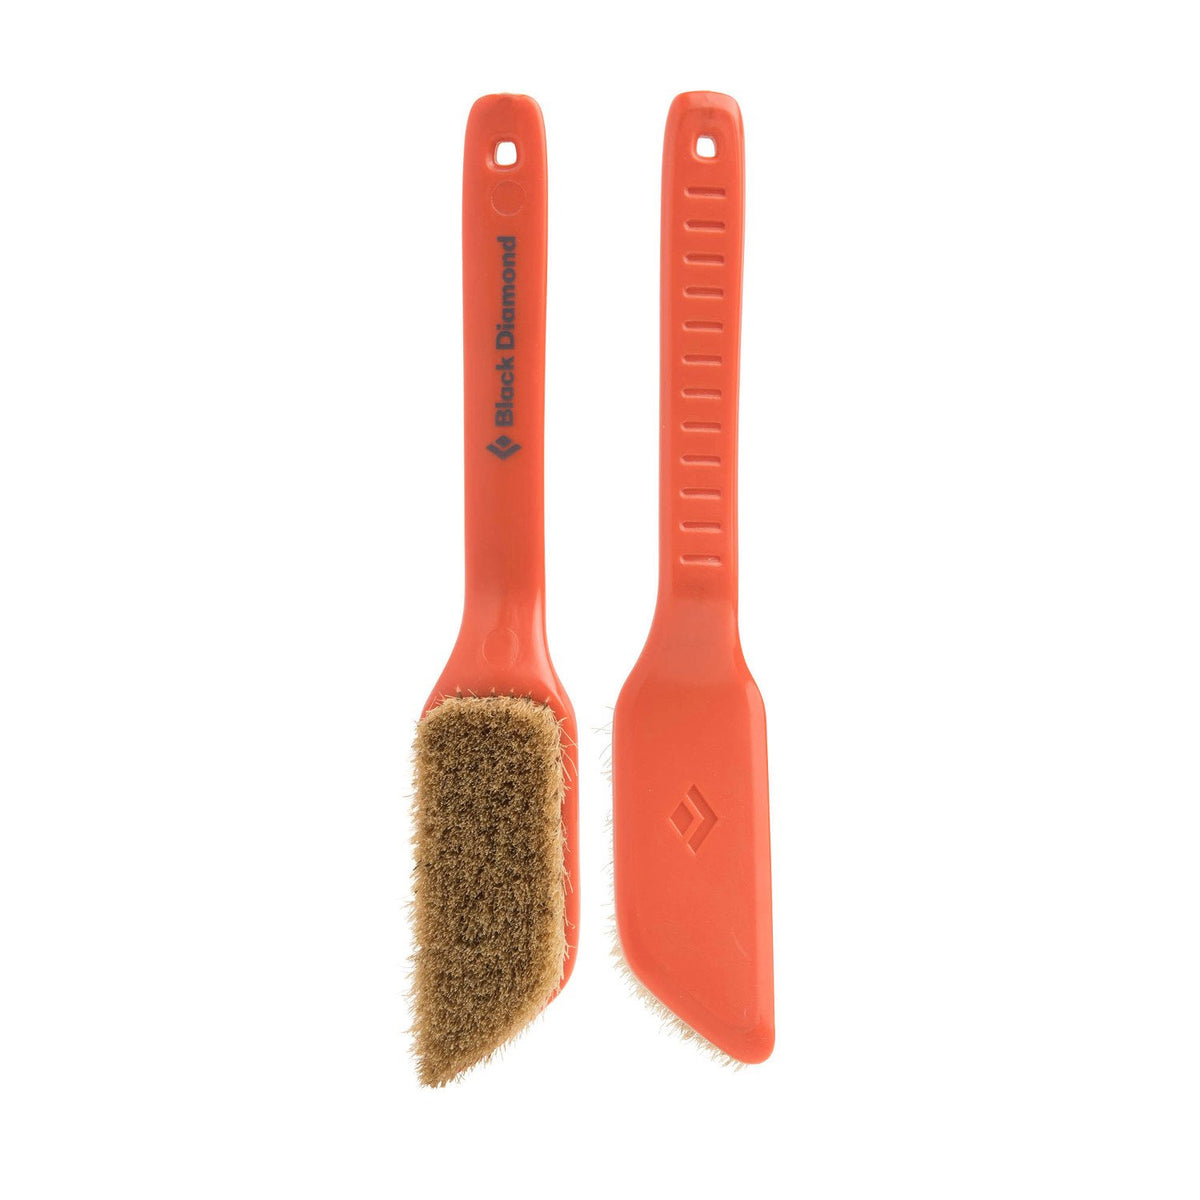 Pair of orange Black Diamond Boars Hair Brushes - Medium, 1 shown facing and 1 shown in the reverse